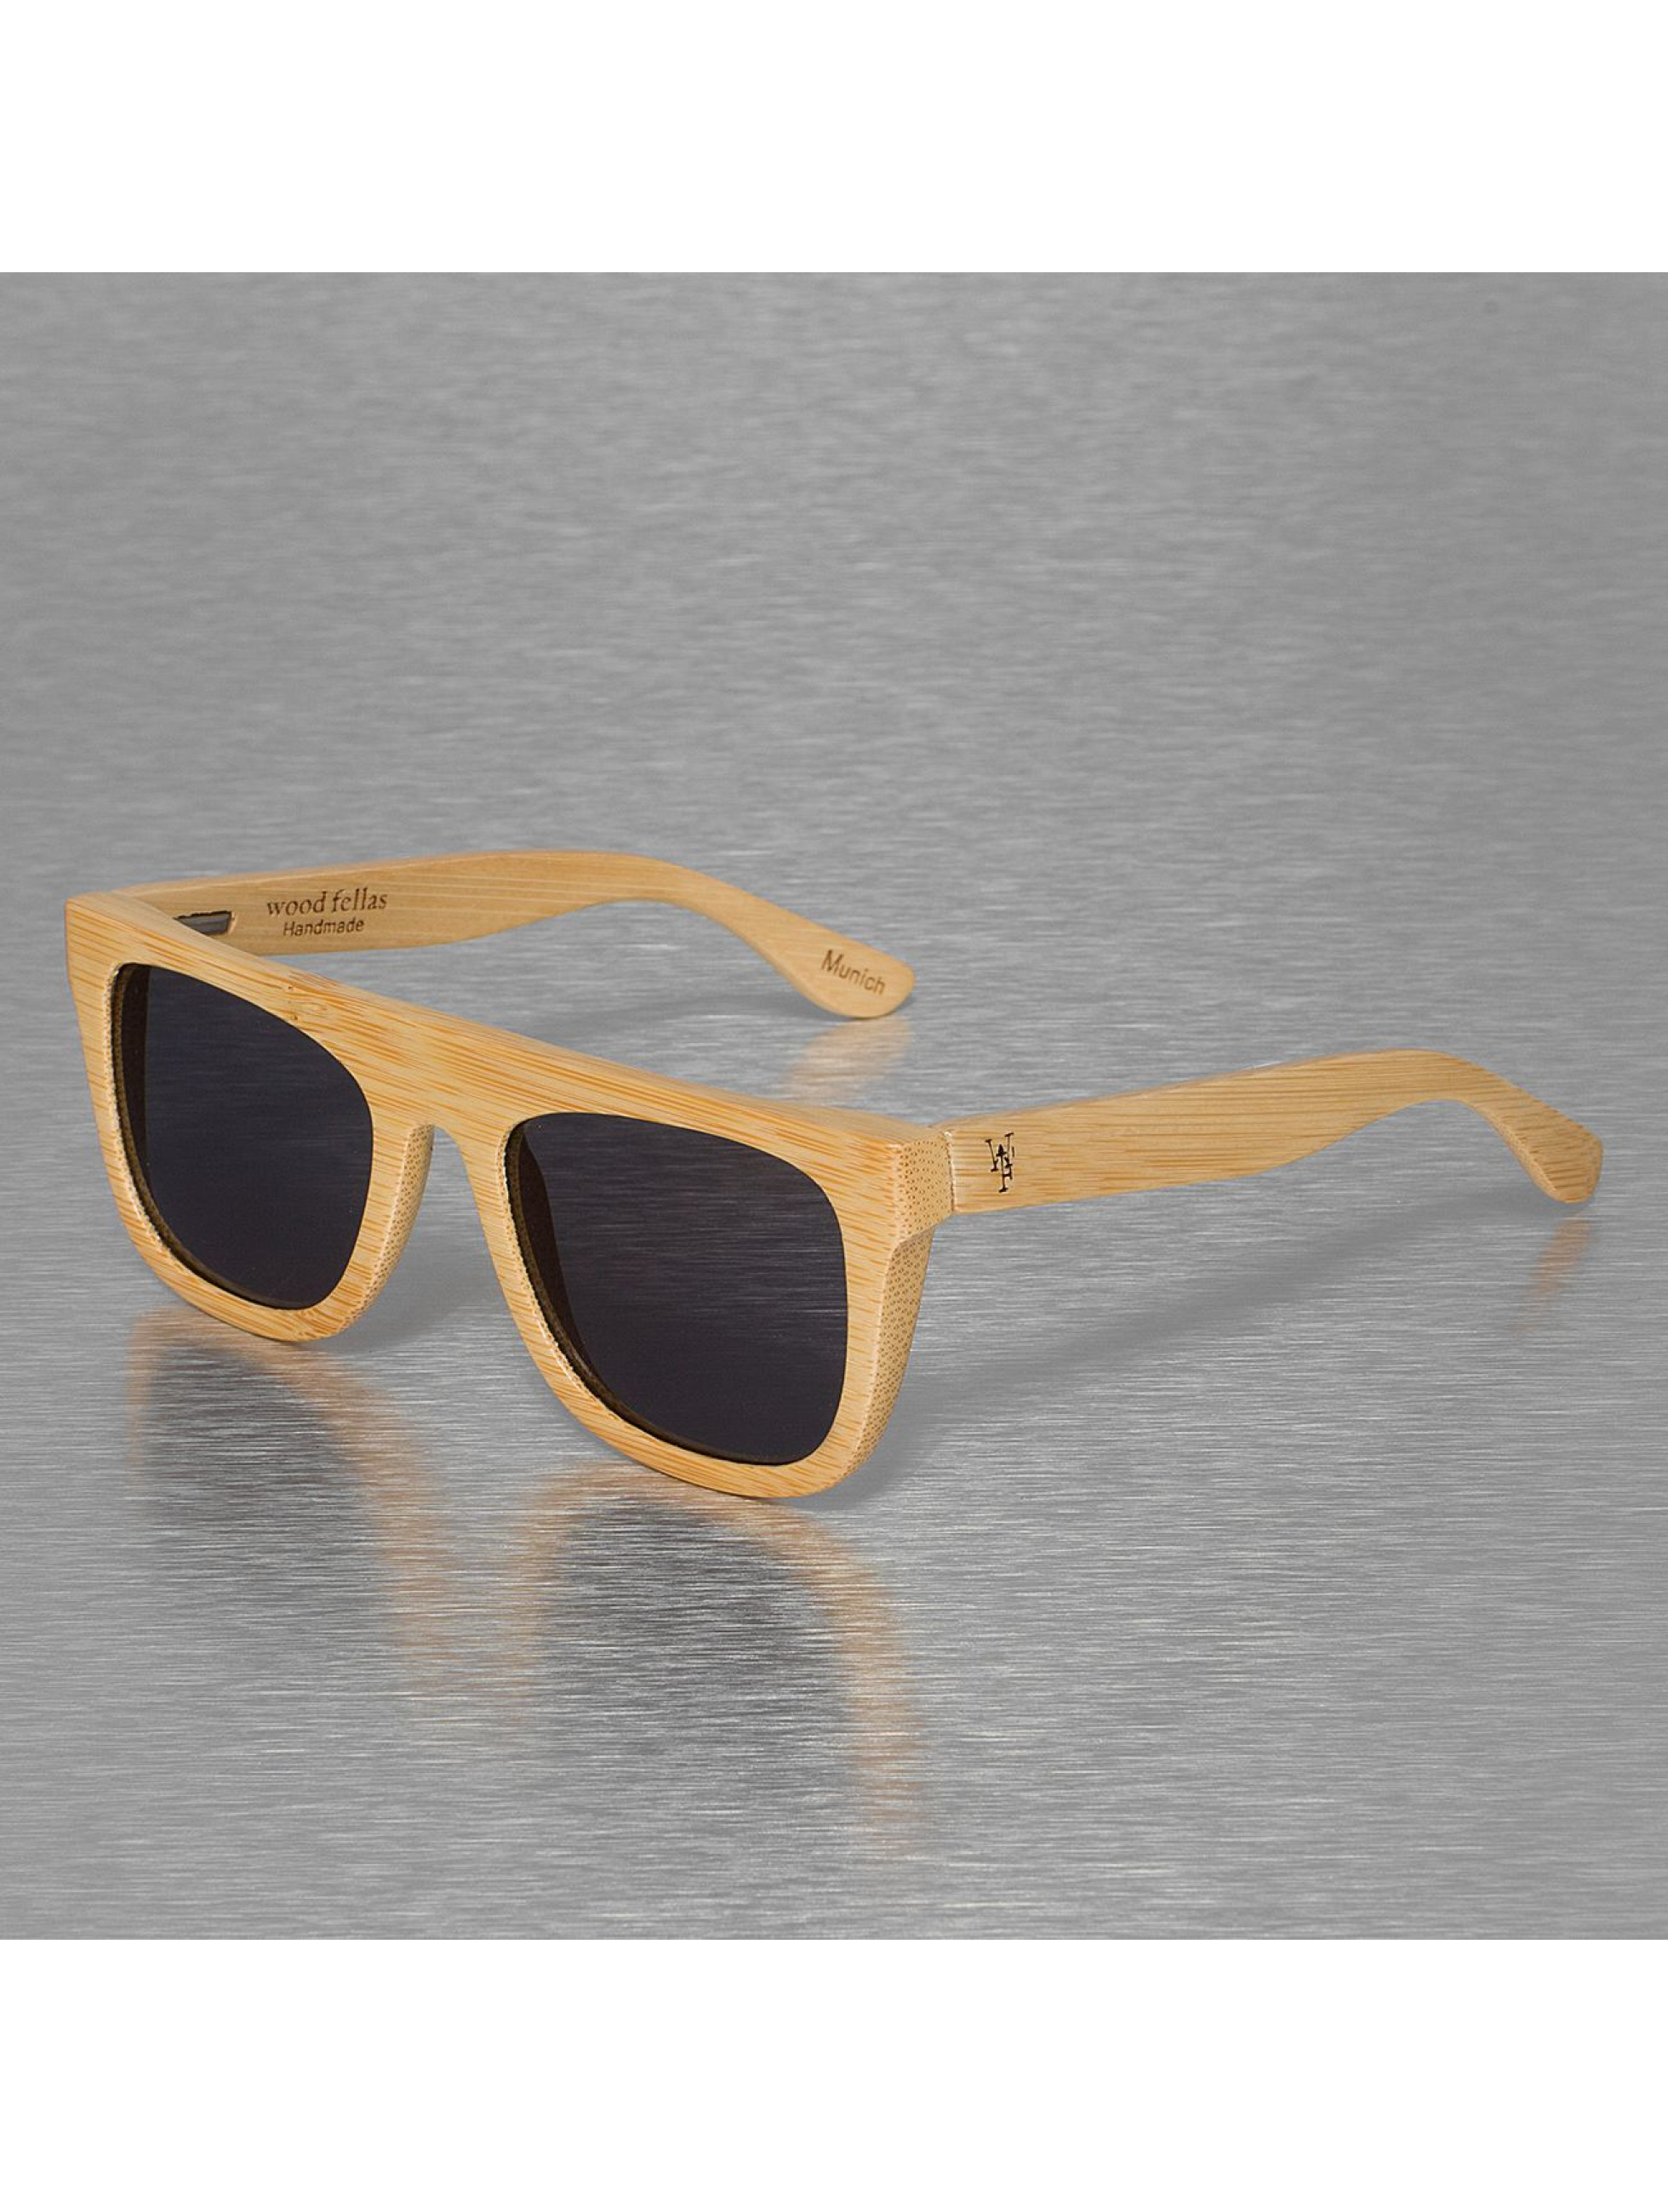 Wood Fellas Eyewear Männer,Frauen Sonnenbrille Wood Fellas Mino in braun